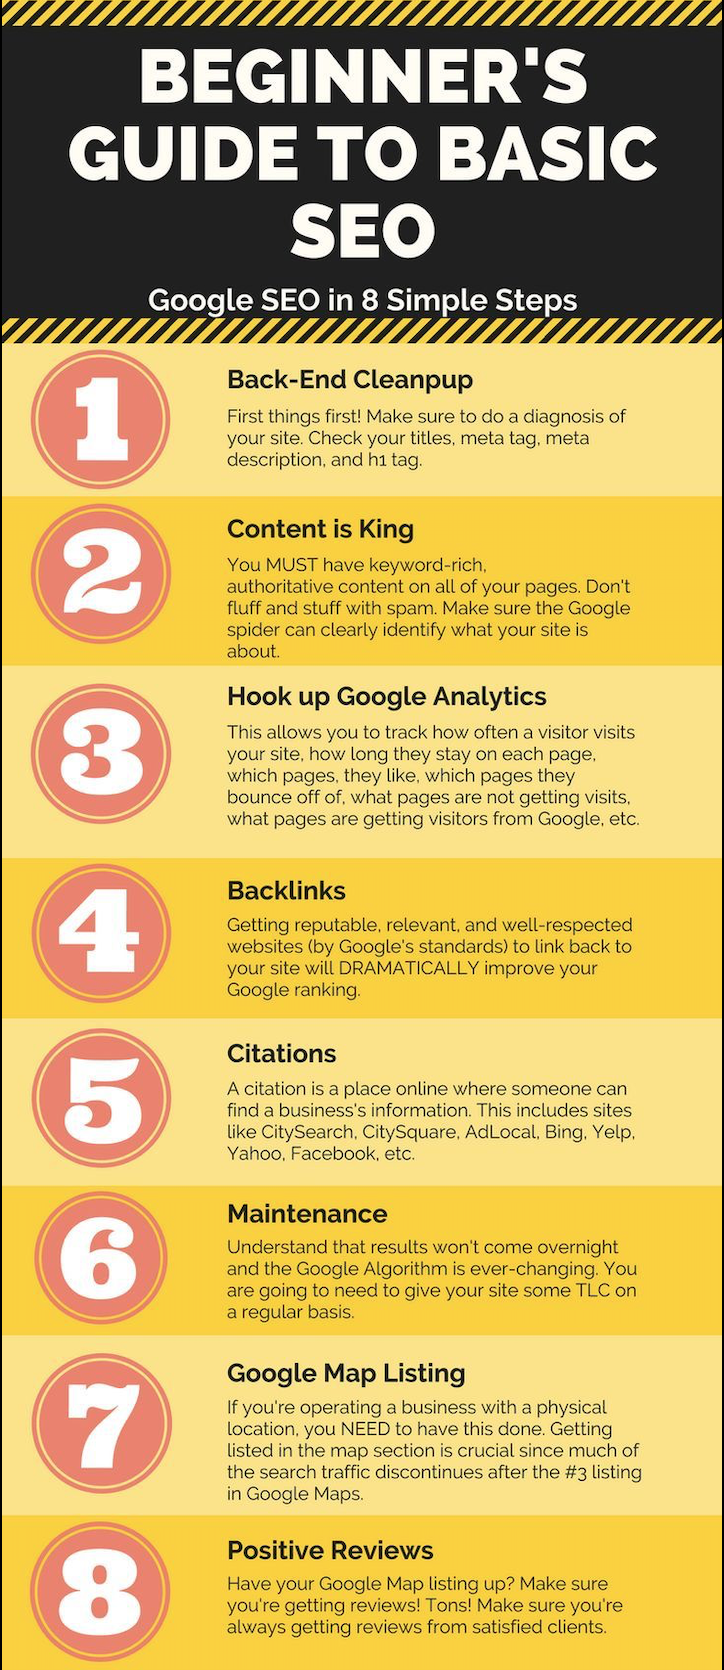 Onpage local small businesses SEO infographic